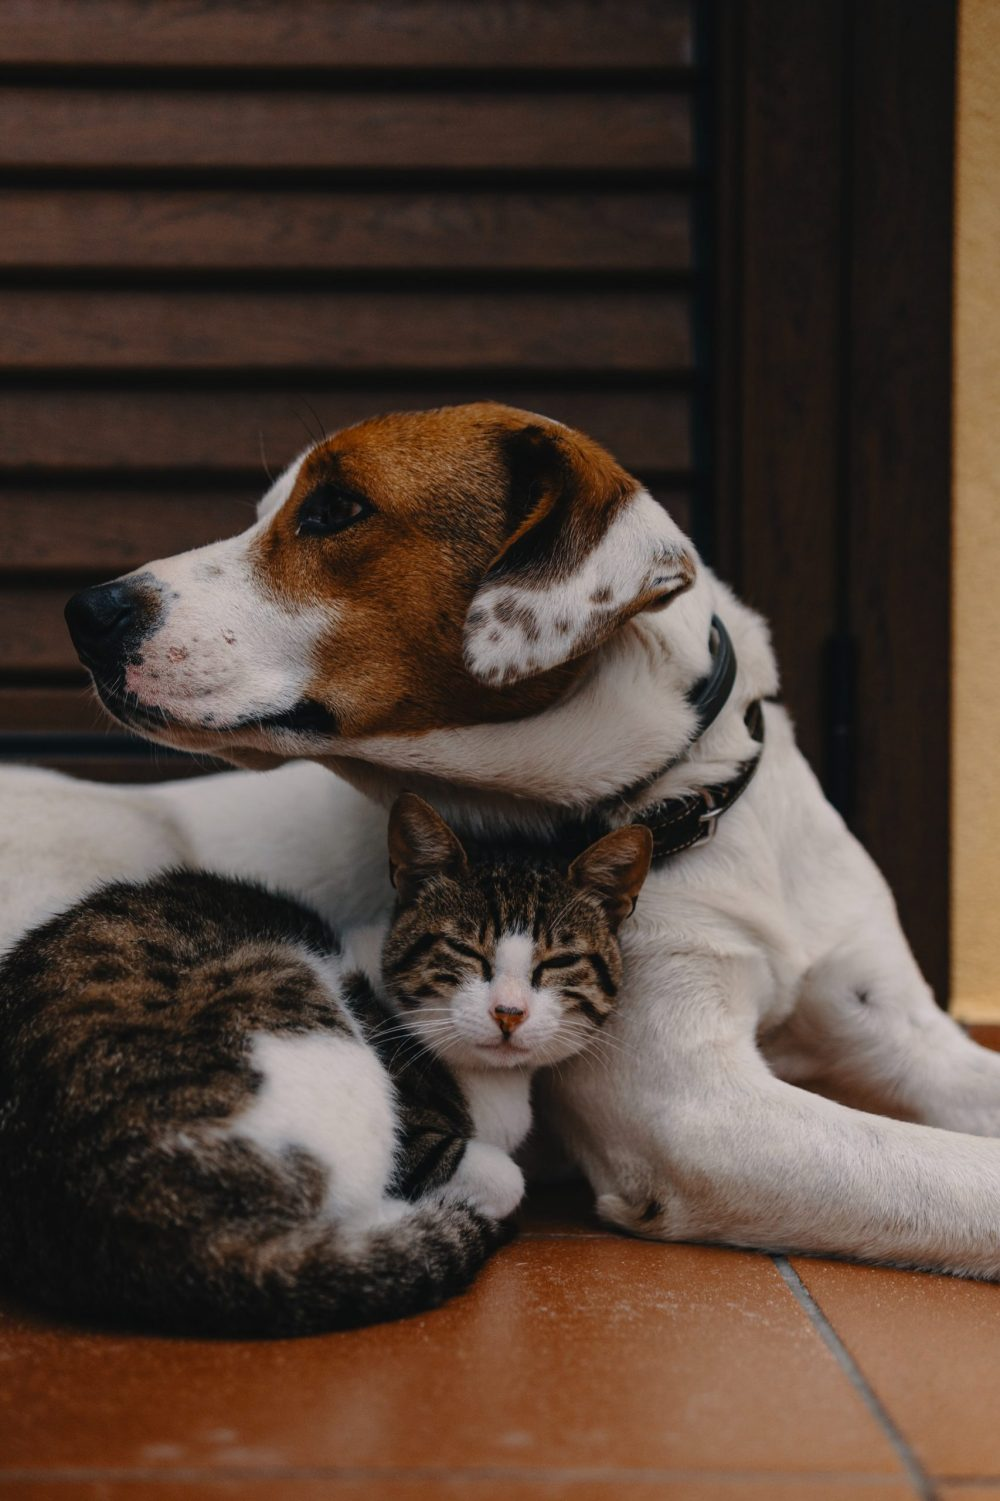 A picture of a dog and cat - Animal News Scotland